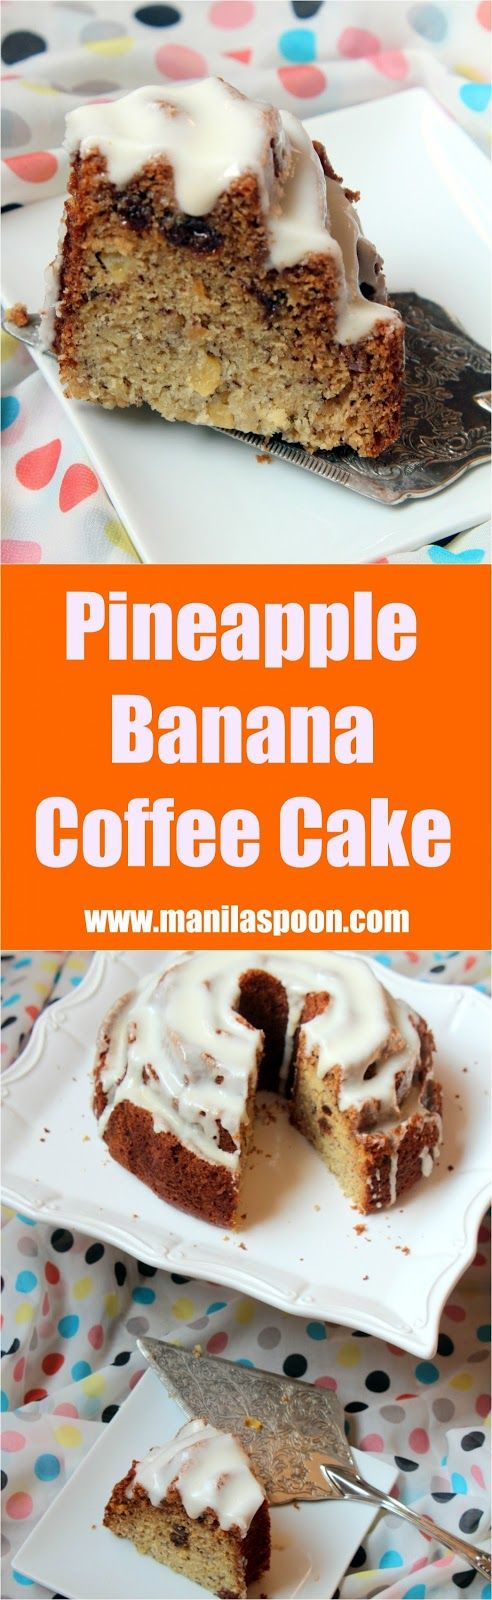 Bursting with tropical flavors from bananas and pineapples this cake is delicious and super moist! Perfect with your coffee or tea. | manilaspoon.com